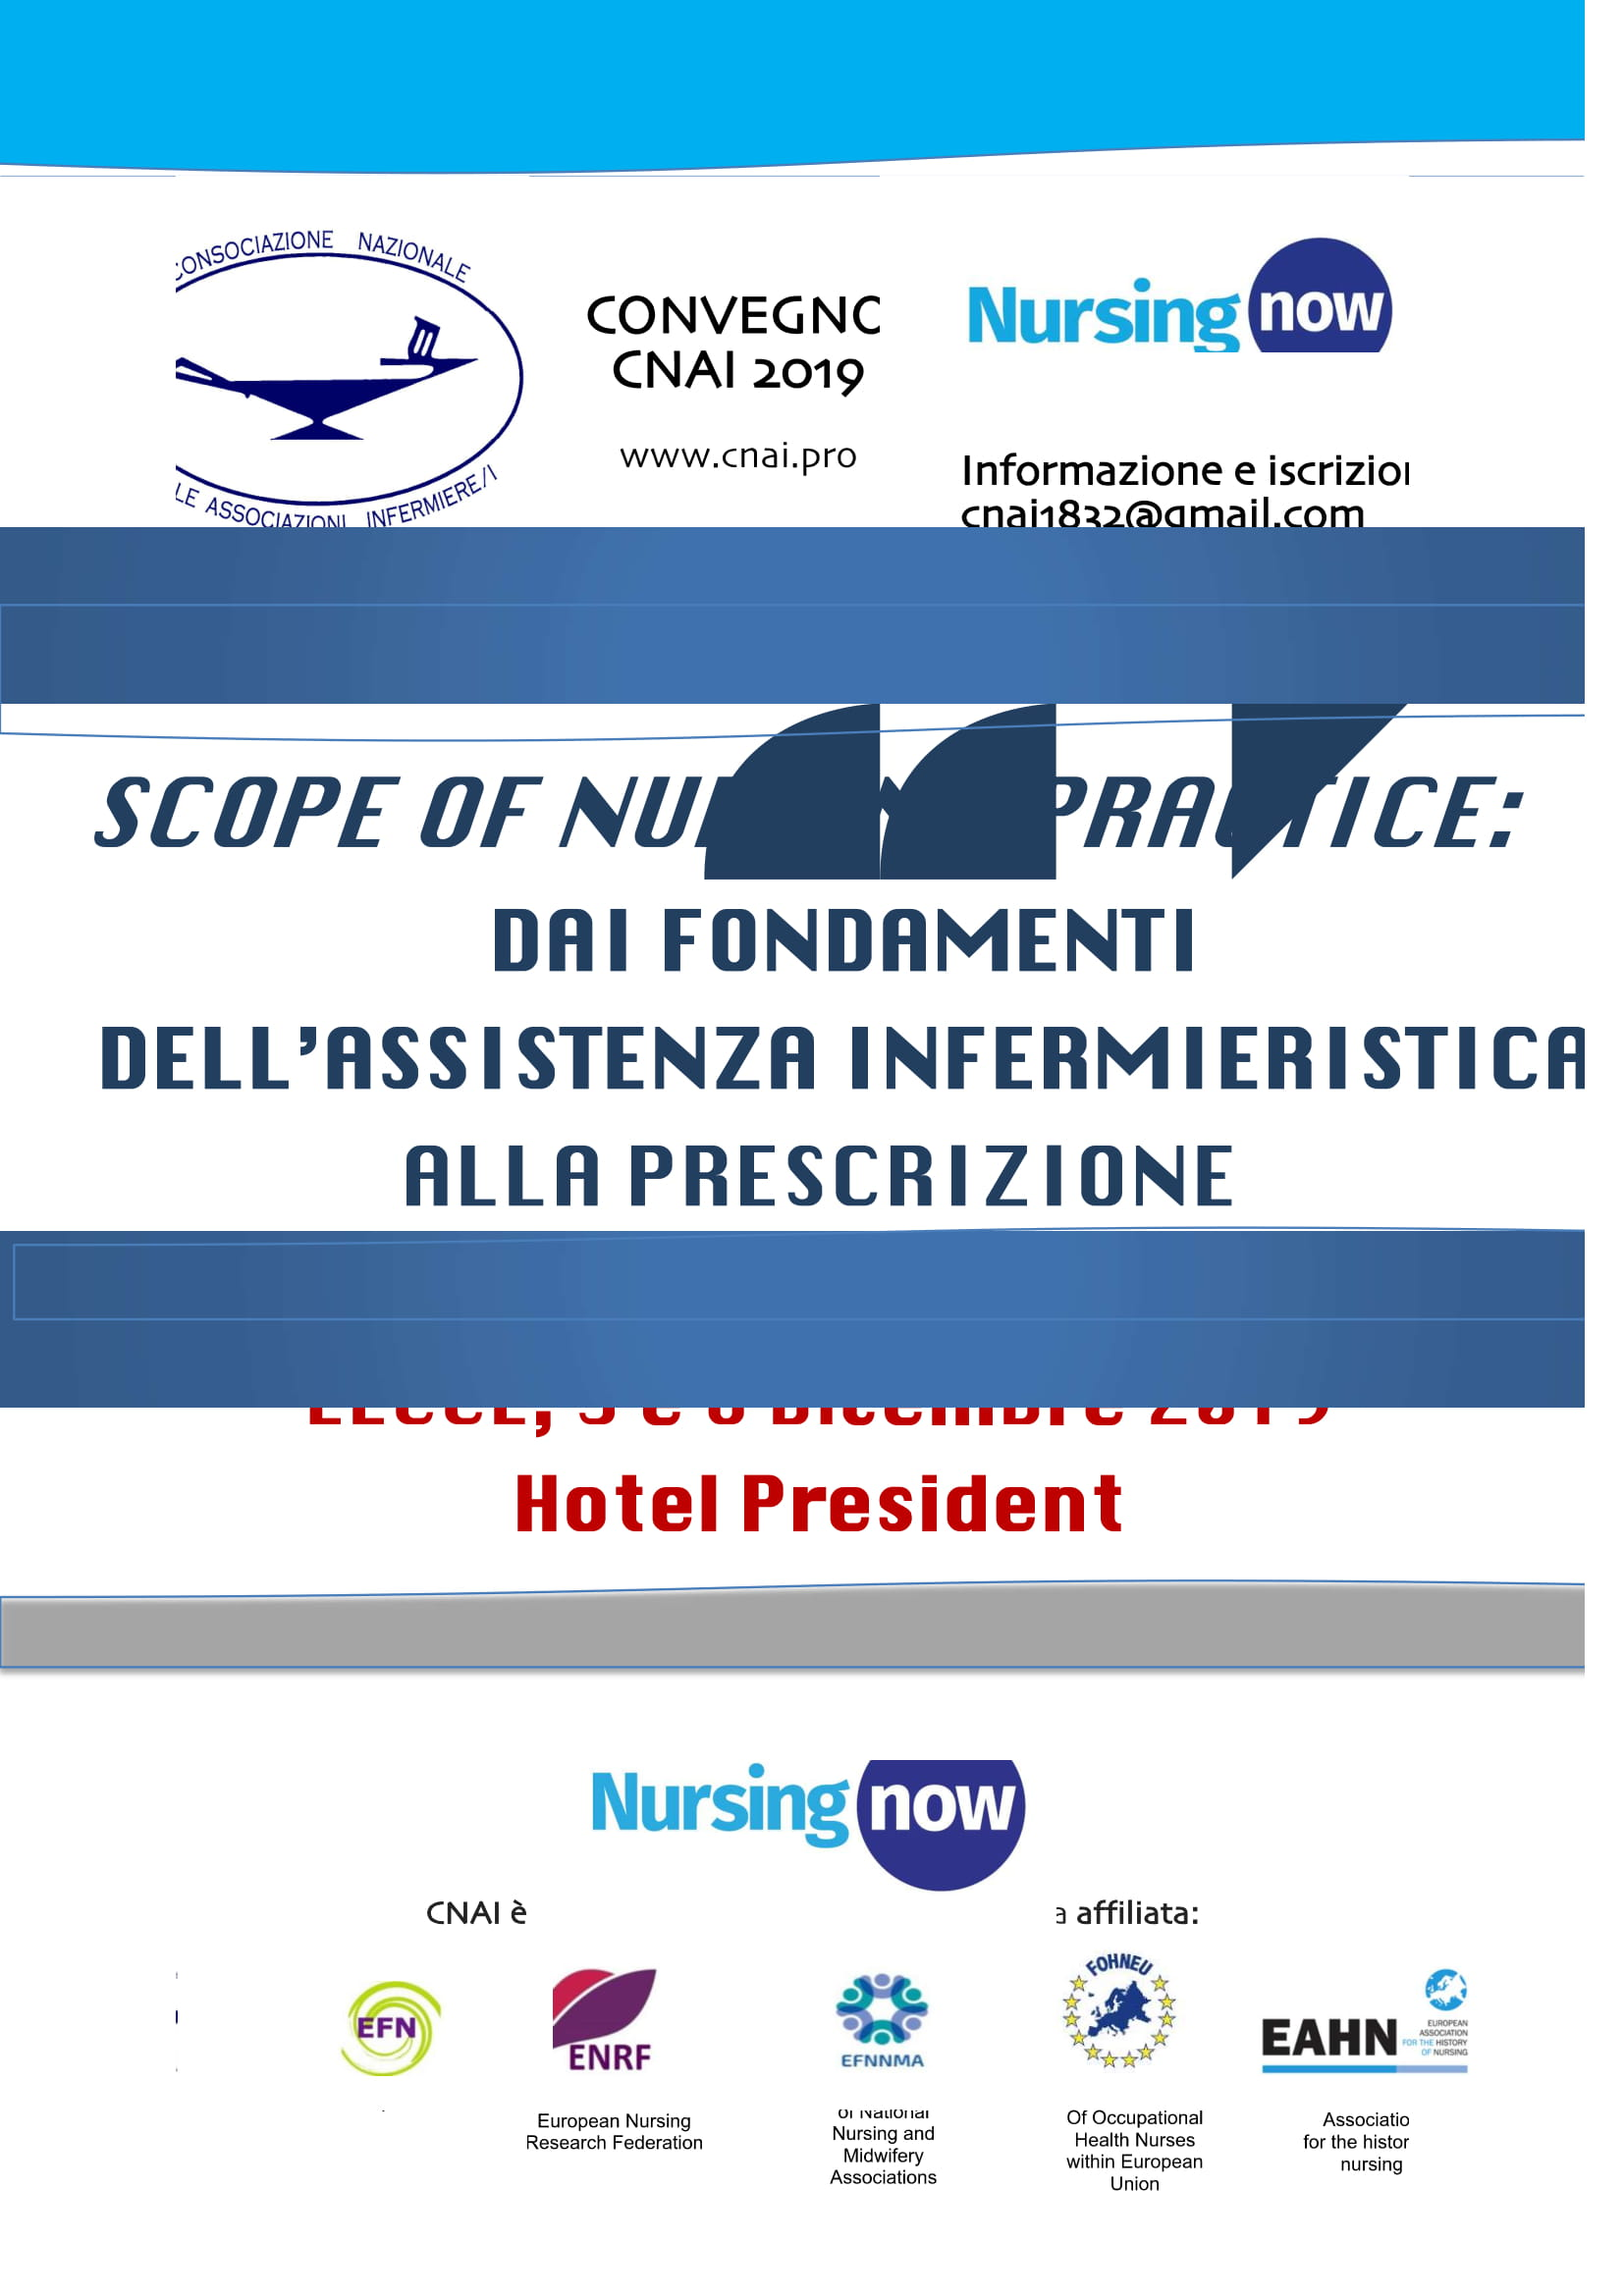 Scope of Nursing Practice: dai fondamenti dell'assistenza infermieristica alla prescrizione